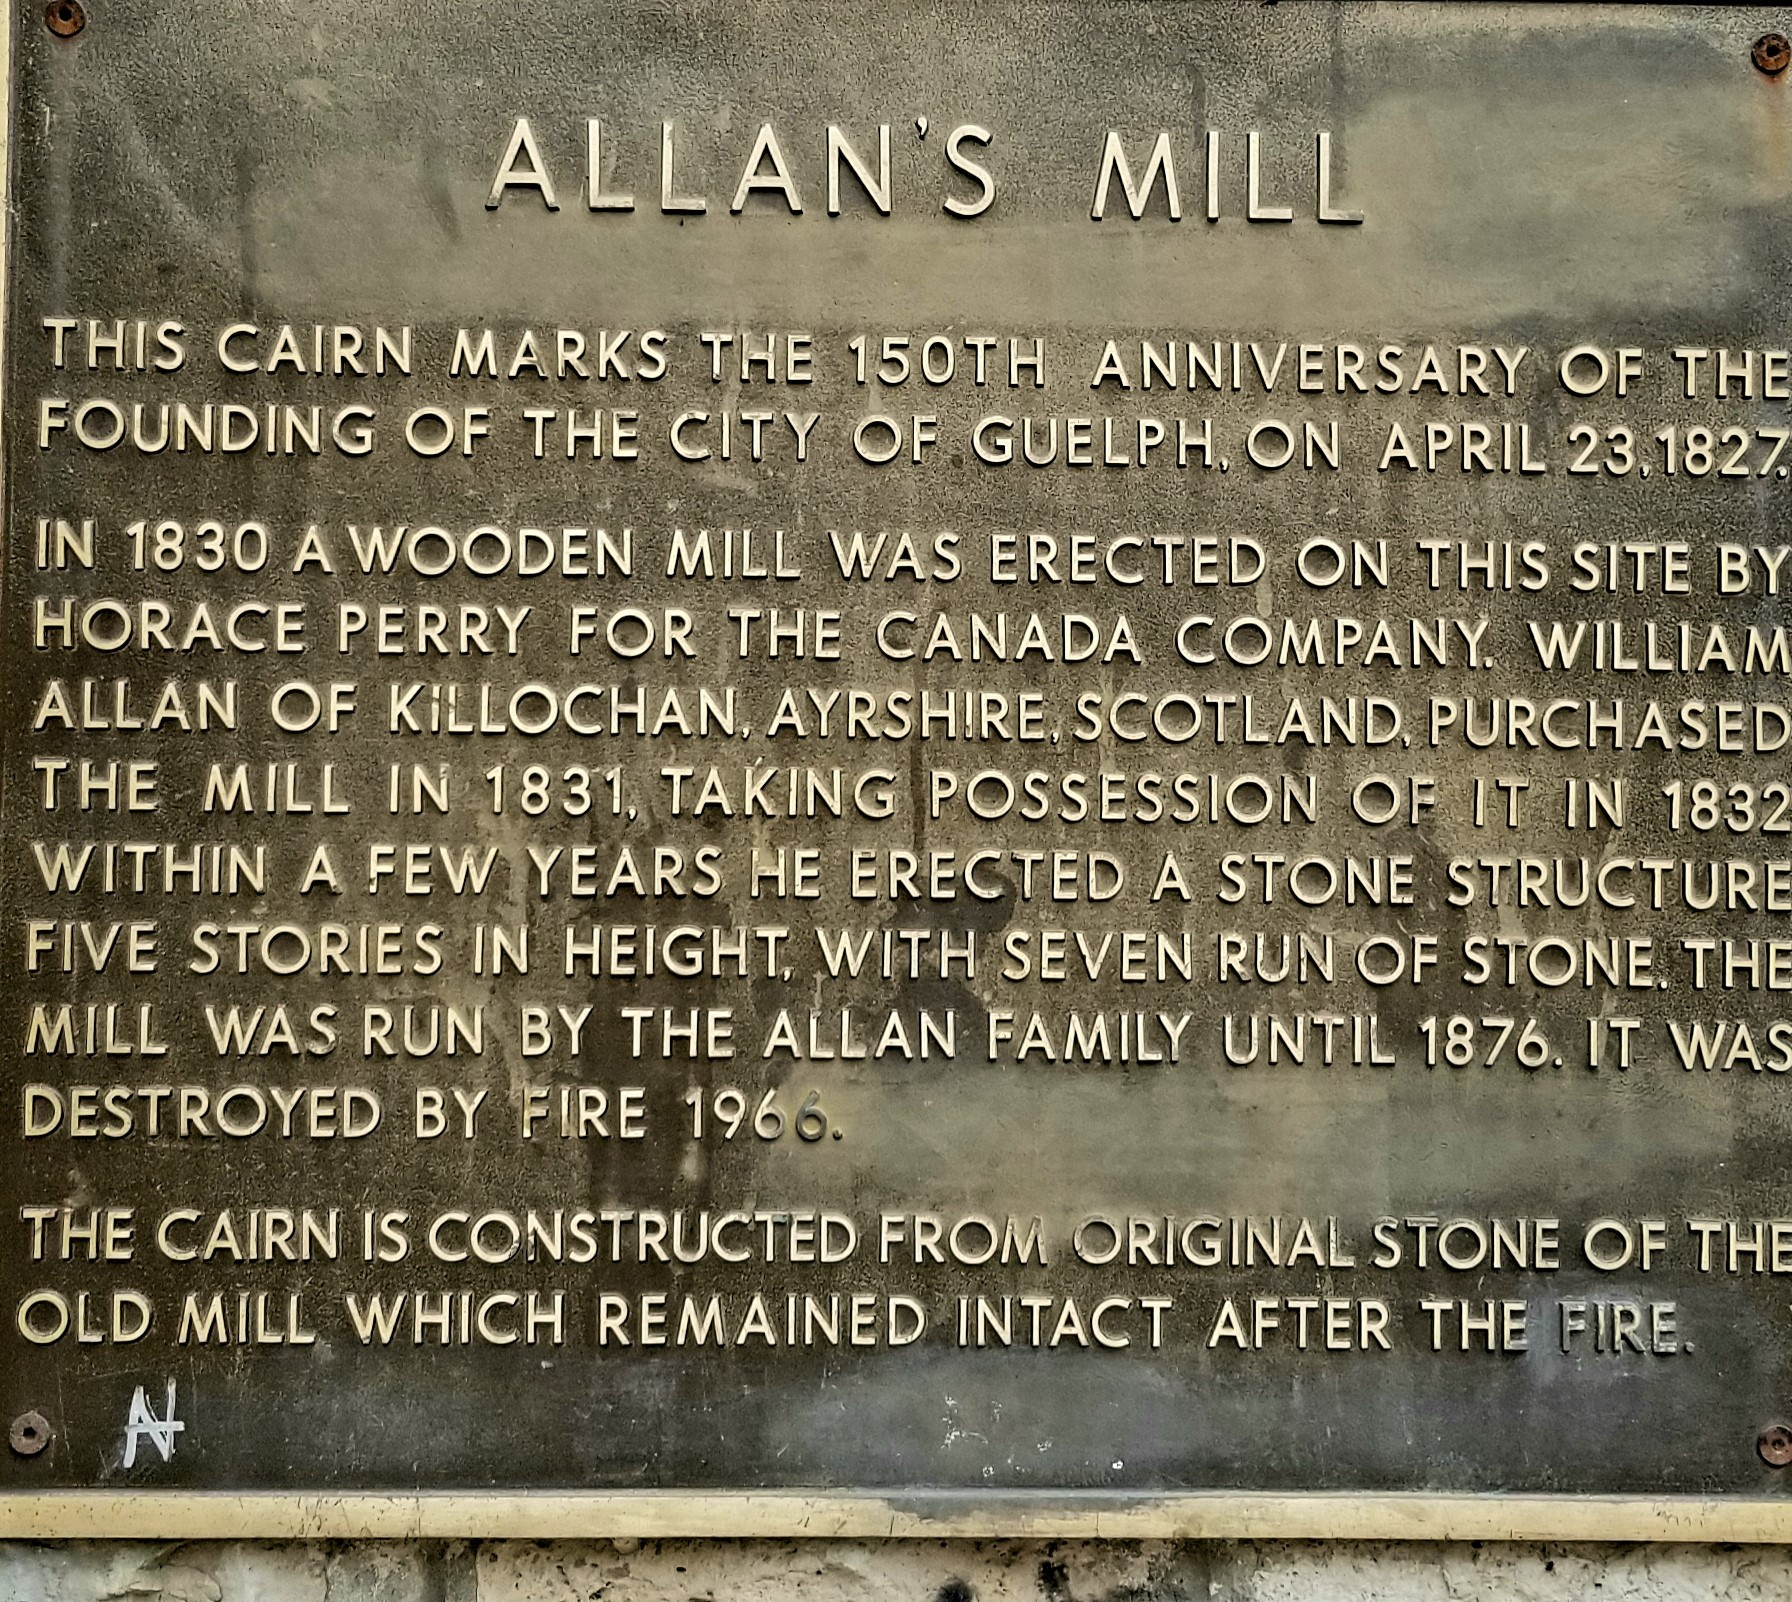 File:Allan's mill, Guelph, historic plaque.jpg - Wikimedia Commons